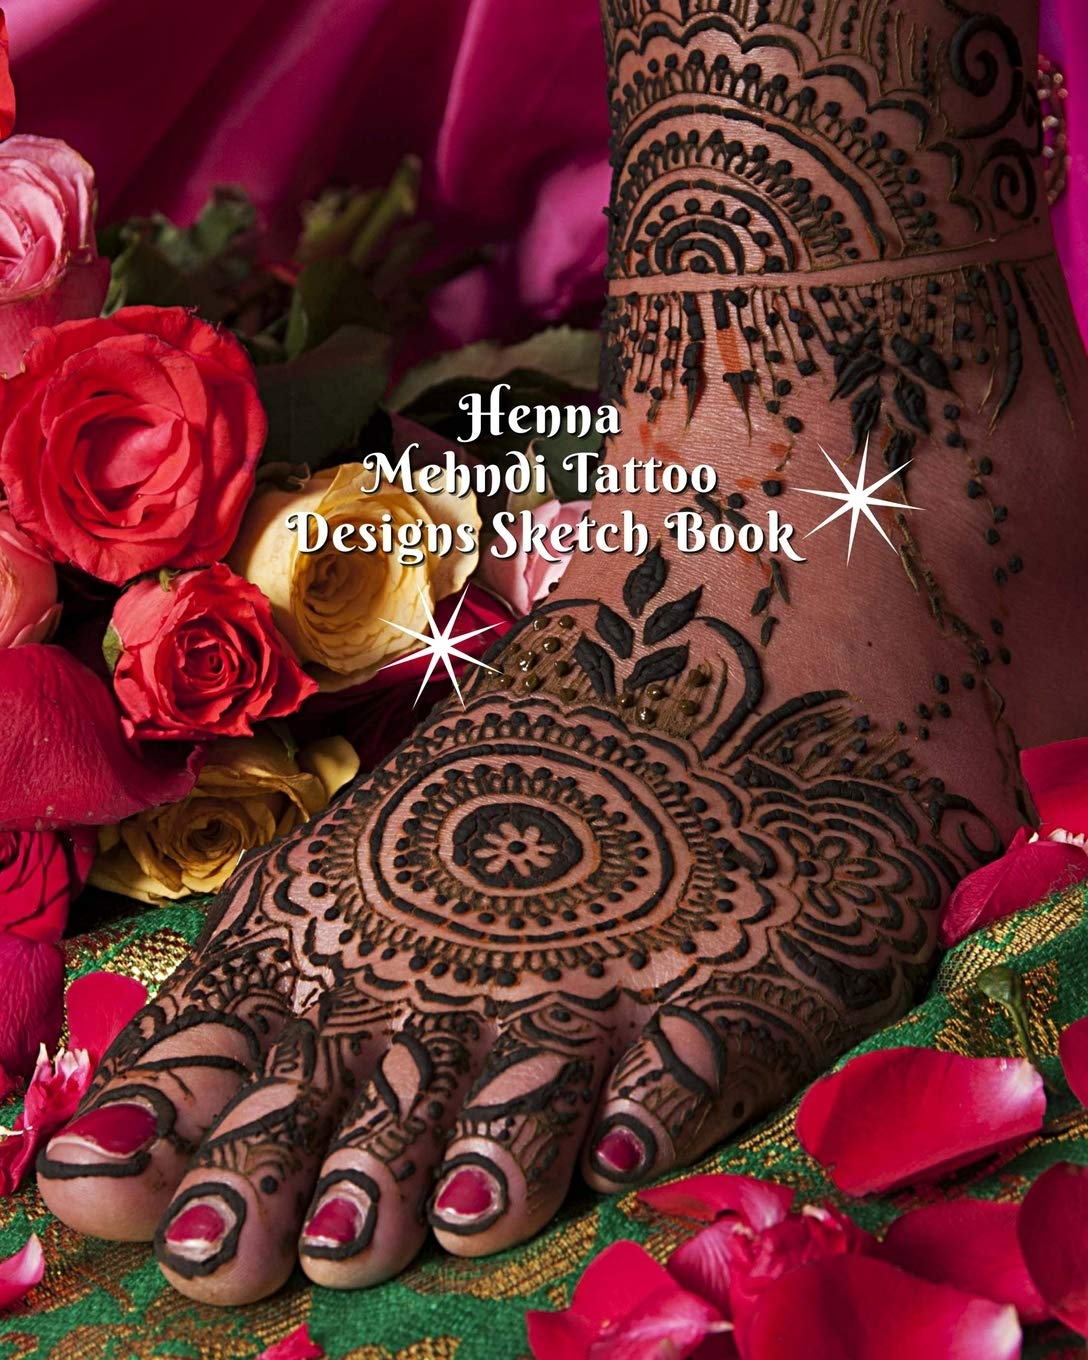 Buy Henna Mehndi Tattoo Designs Sketch Book Henna Tattoo Hand